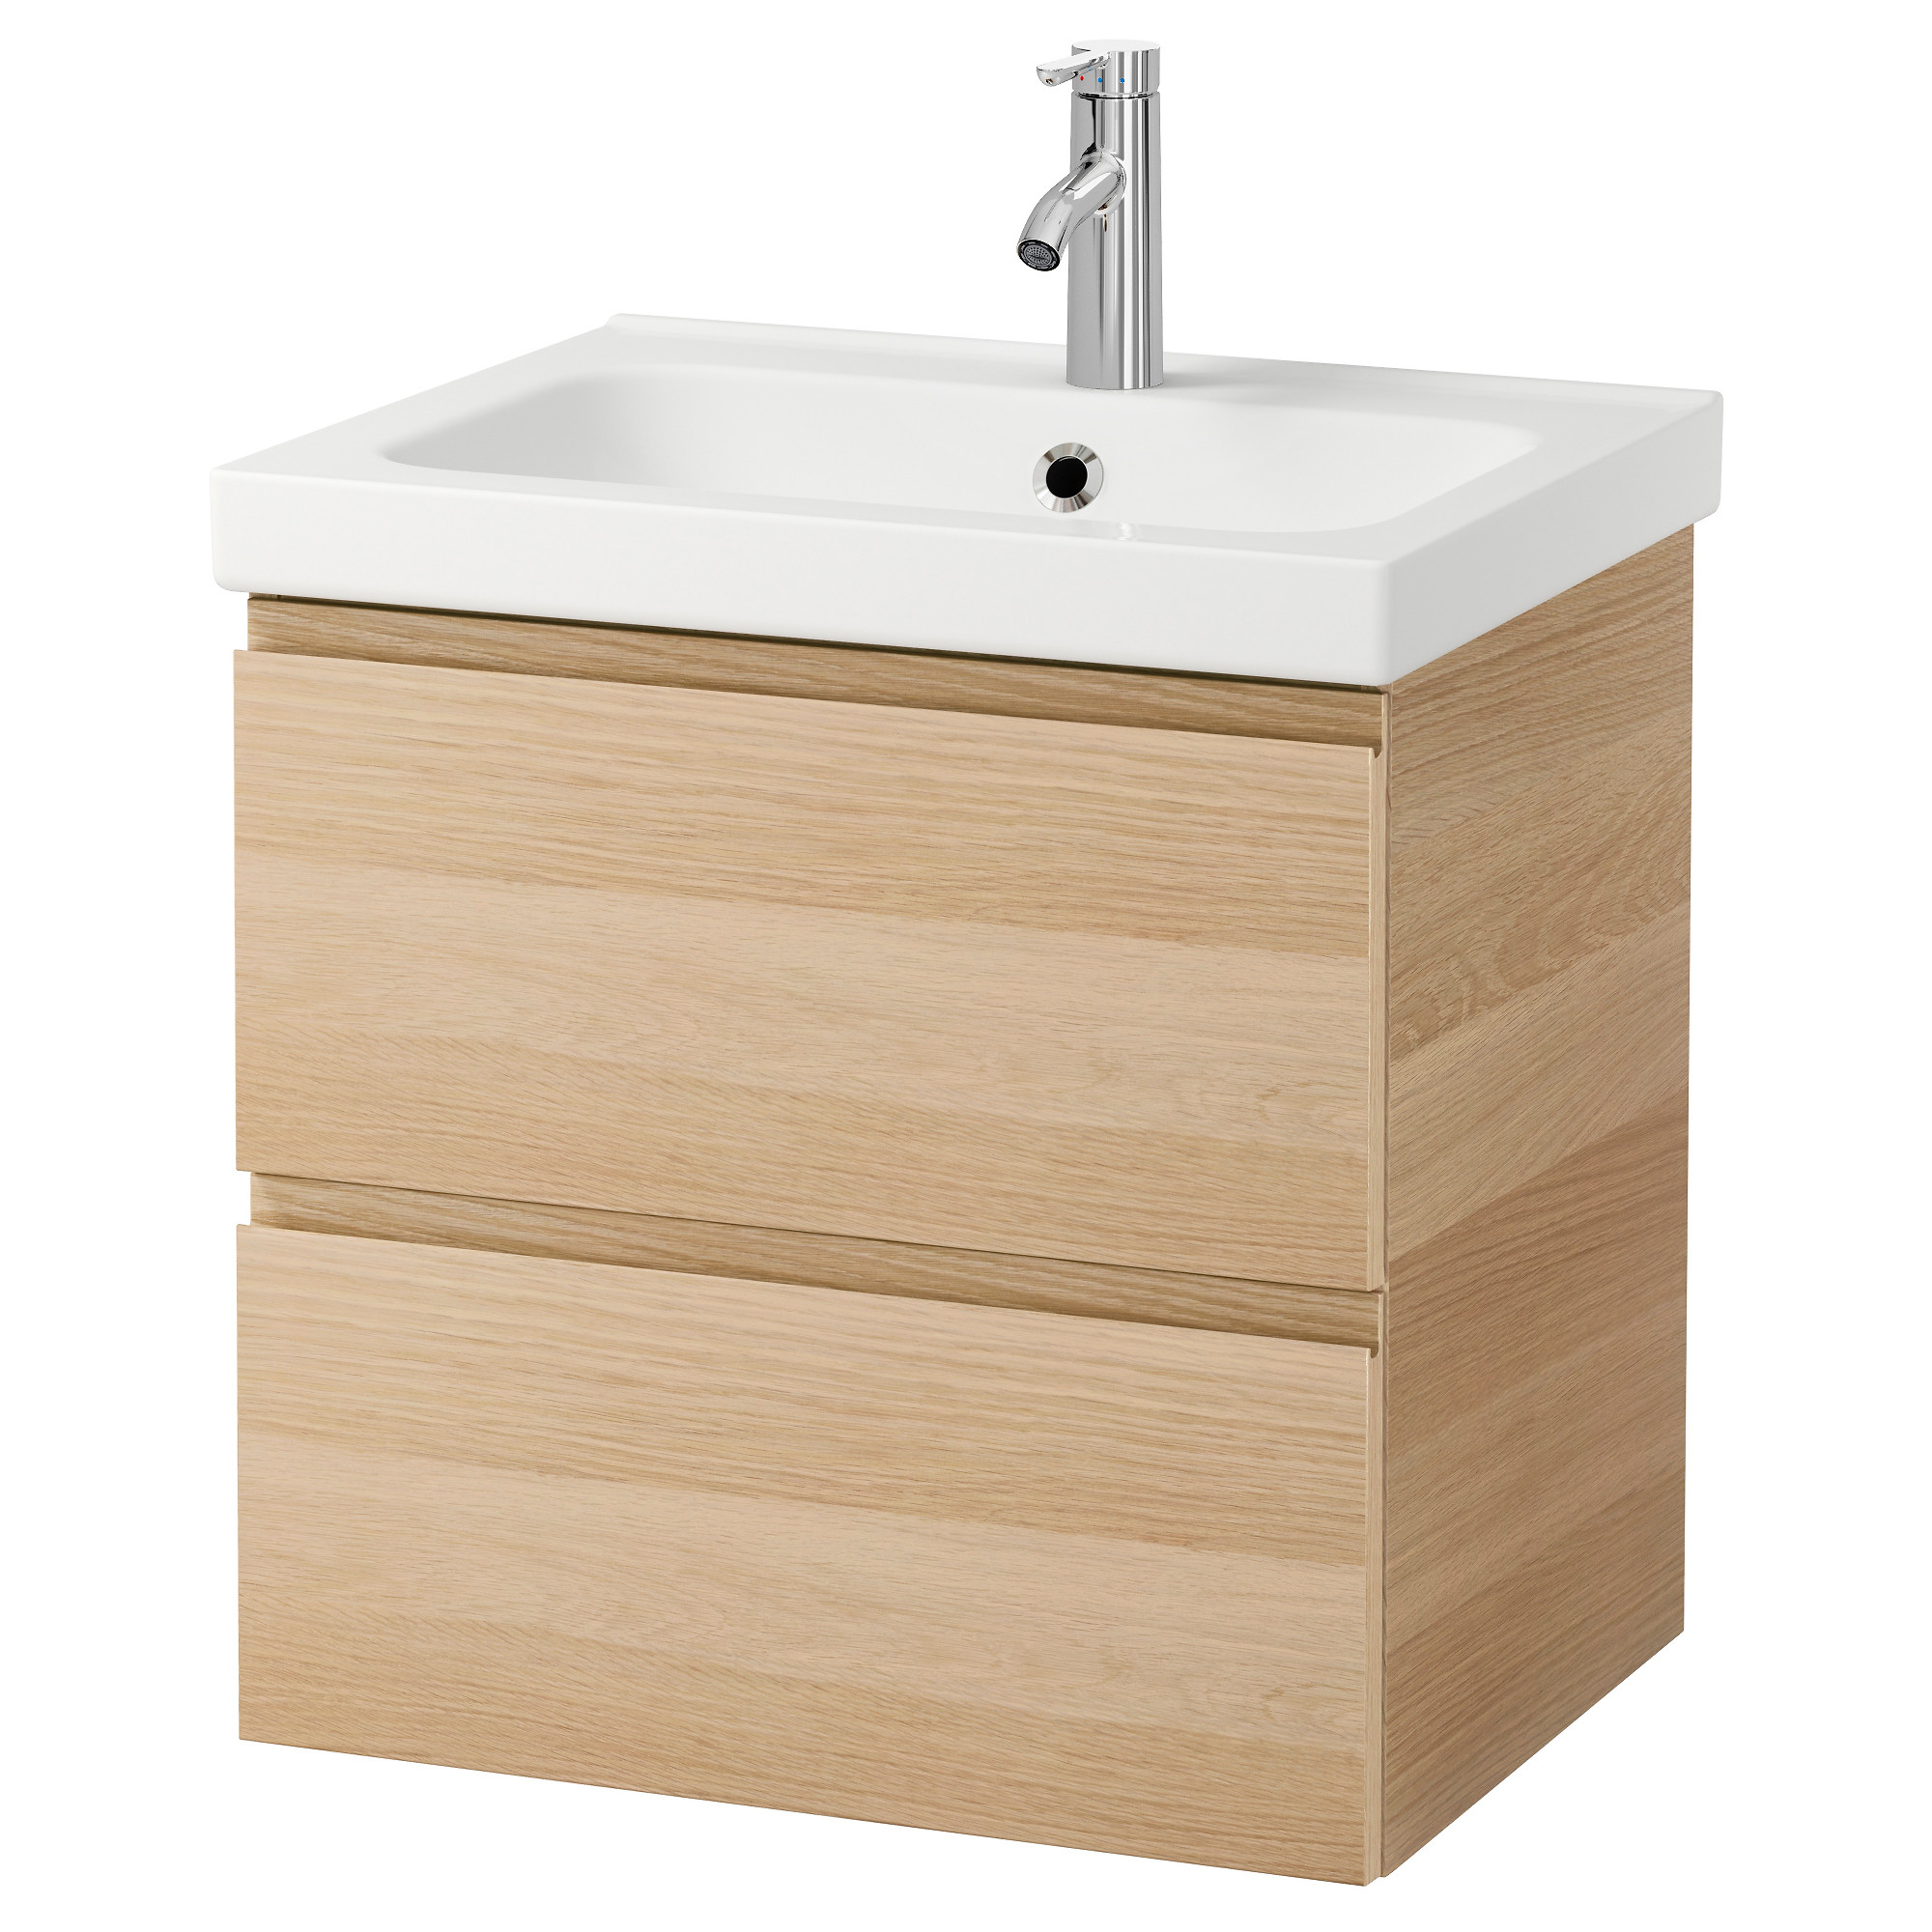 Bath Vanity Ikea Godmorgon Odensvik Sink Cabinet With 2 Drawers White Stained